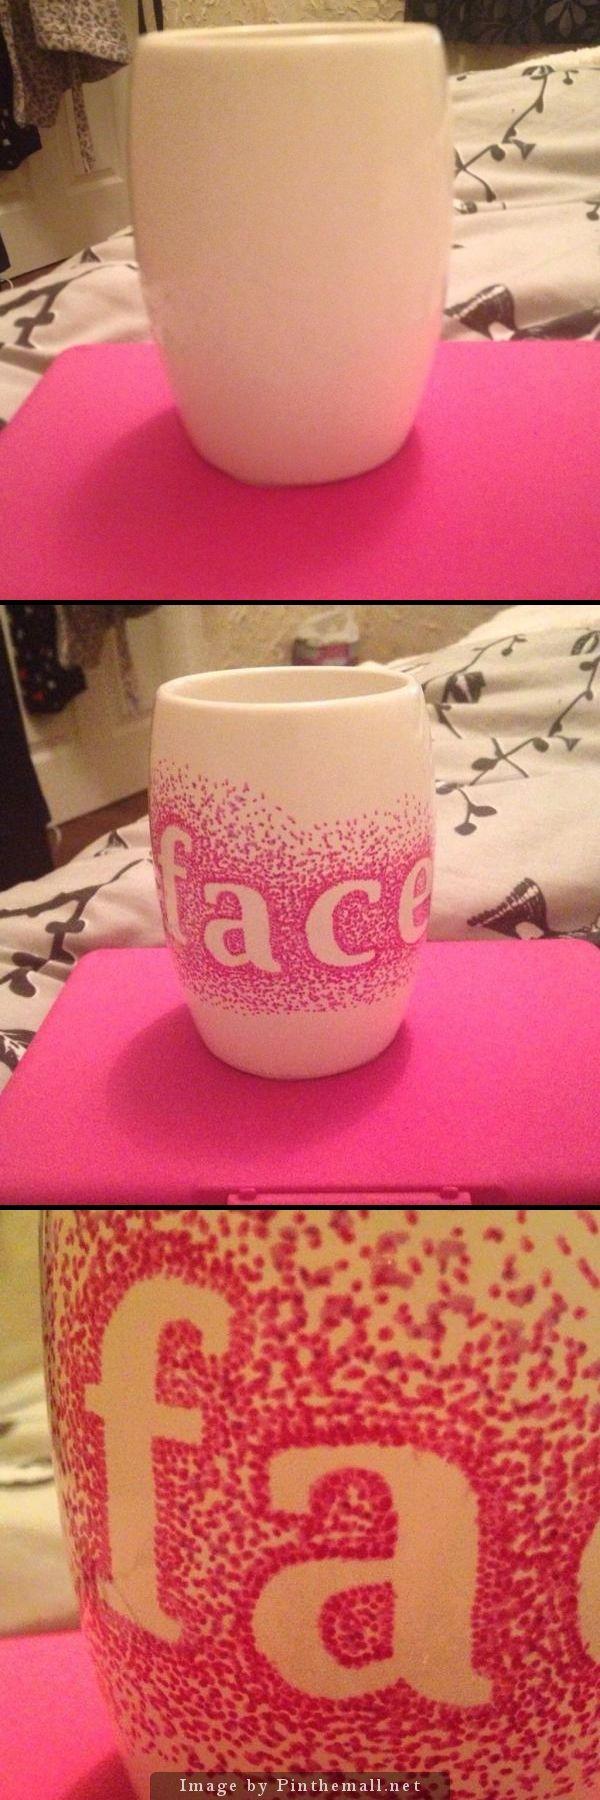 Inspiration taken from customising mugs with sharpies and initials. I thought I'd try this with my make-up brush holder! - created via http://pinthemall.net